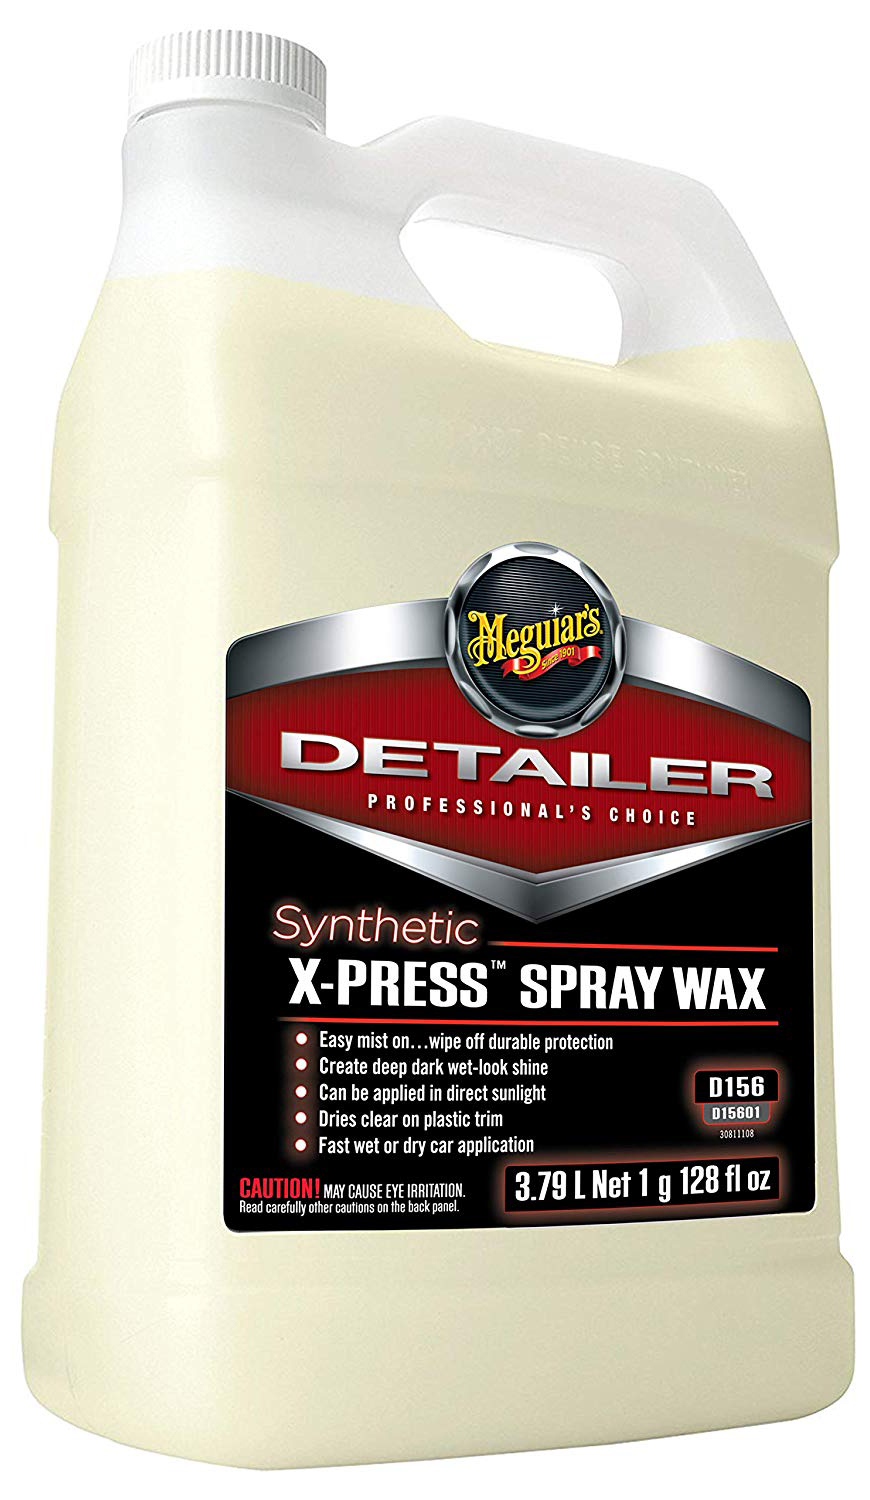 Meguiar's D15601 Synthetic X-Press Spray Wax